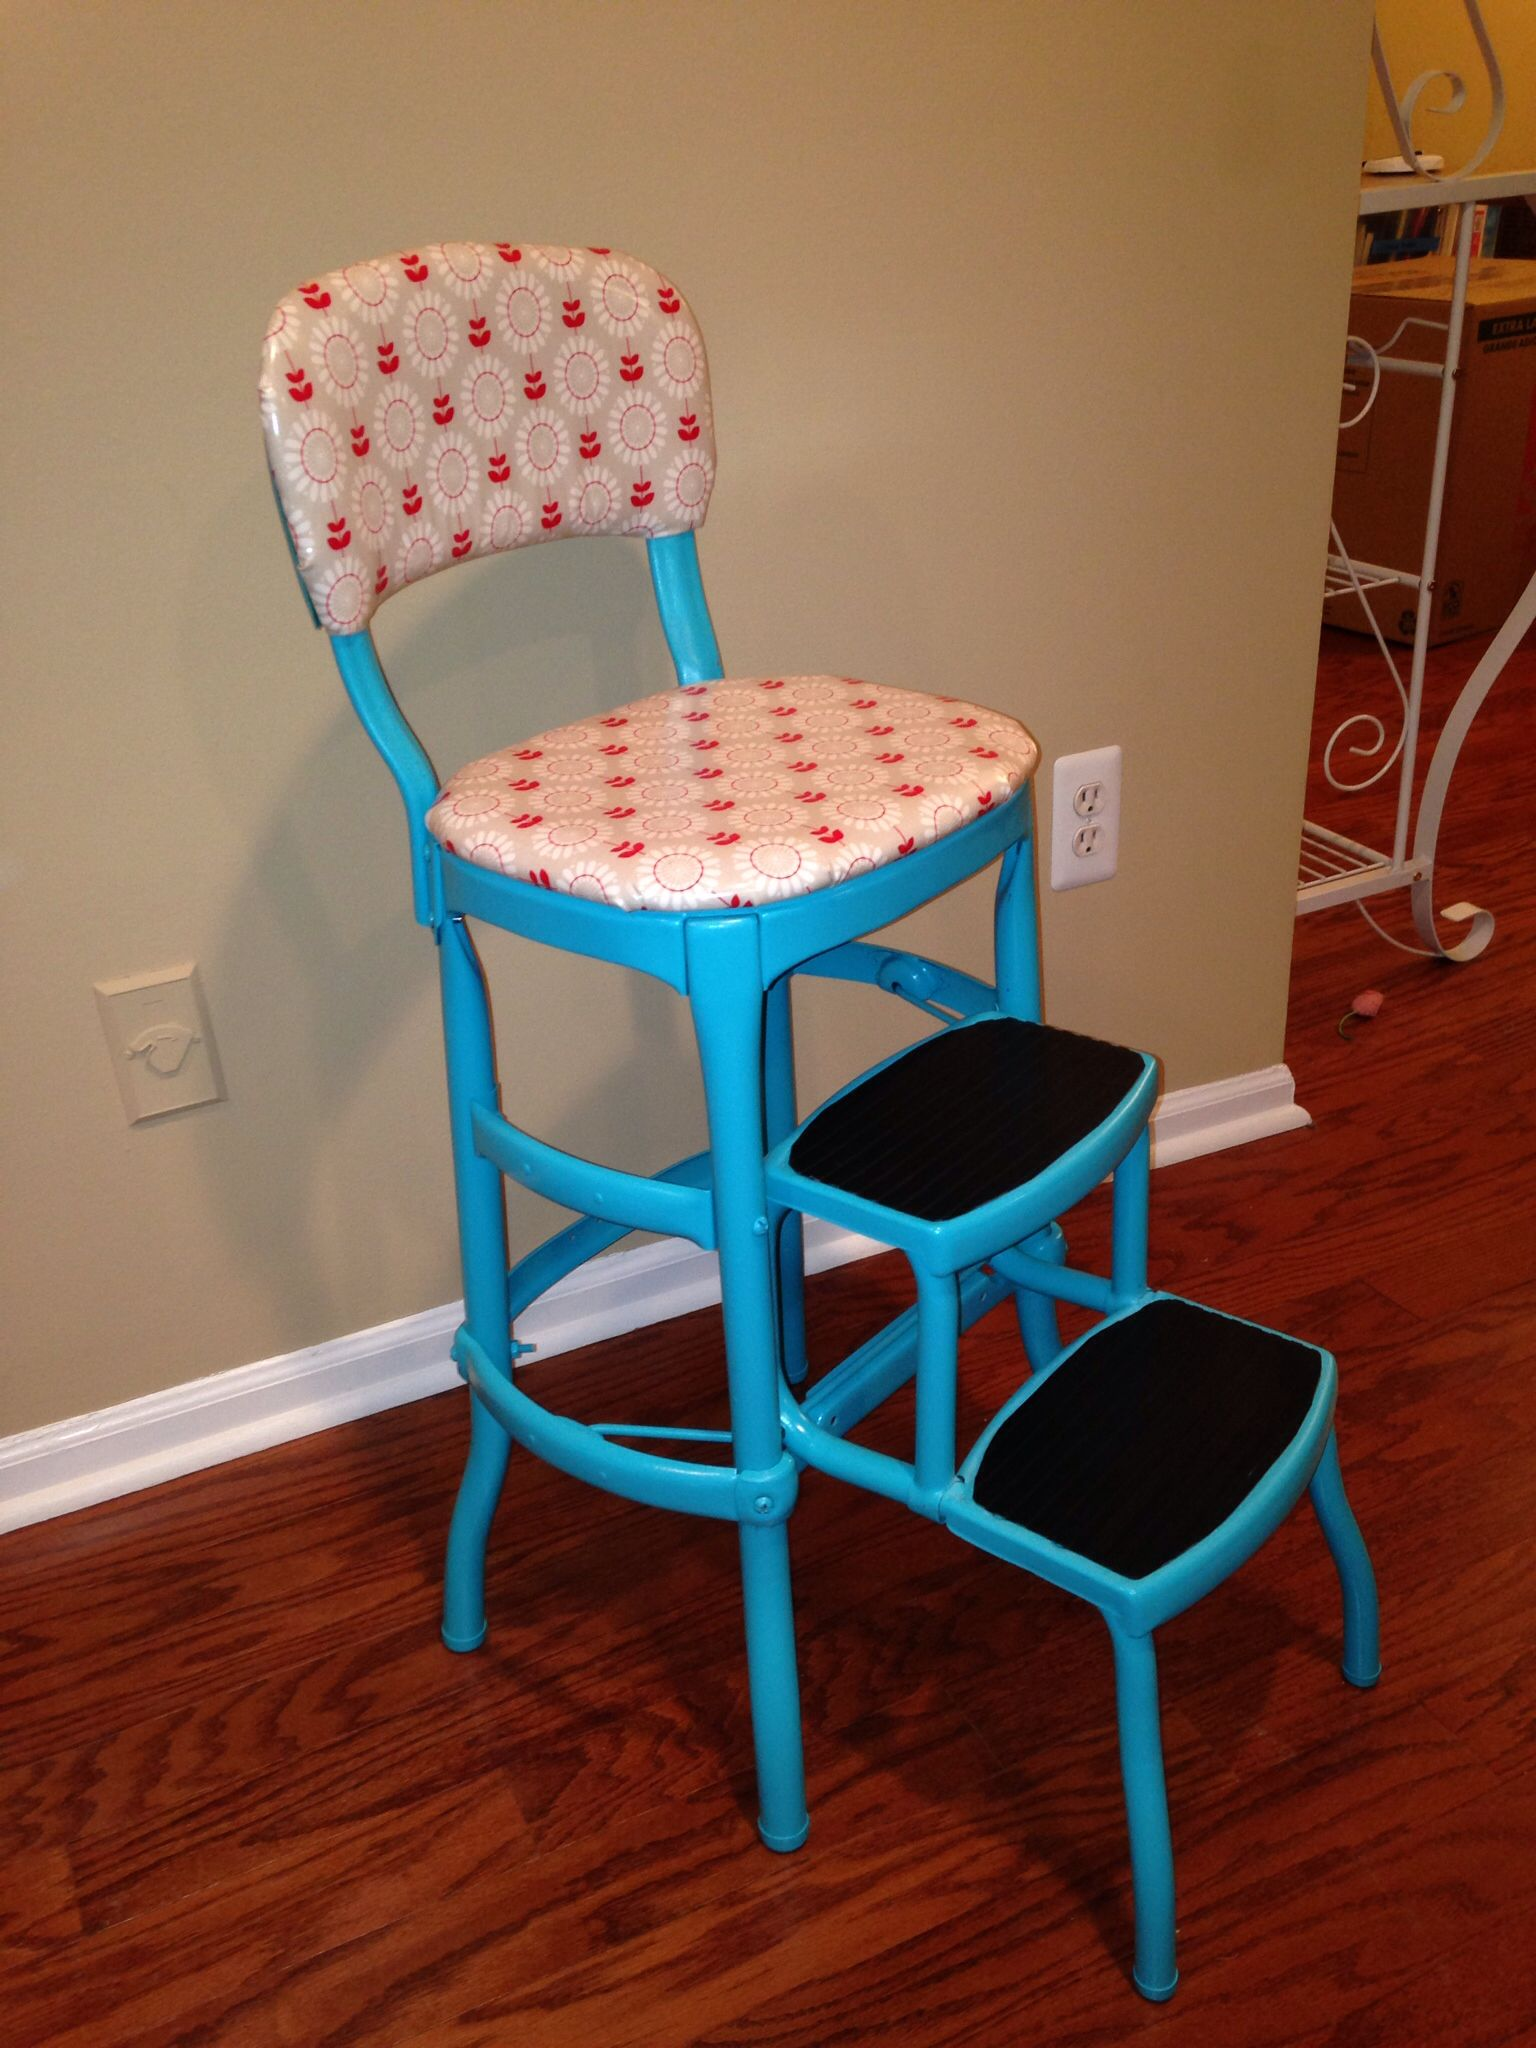 Cosco step stool chair redo My Projects Pinterest